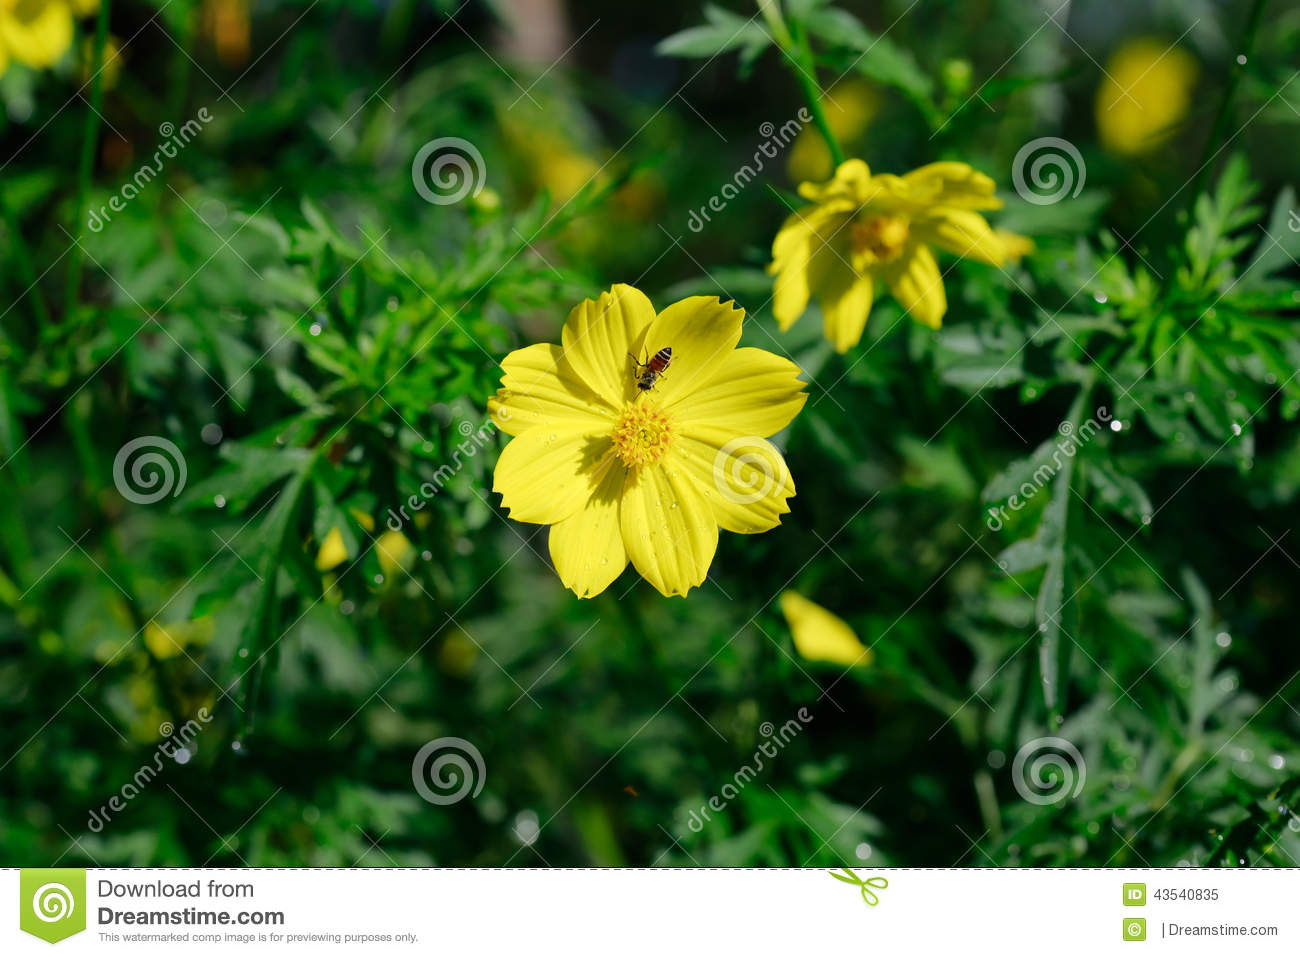 Yellow Cosmos Flower Is Also Known As Cosmos Sulphureus Or Sulfur.